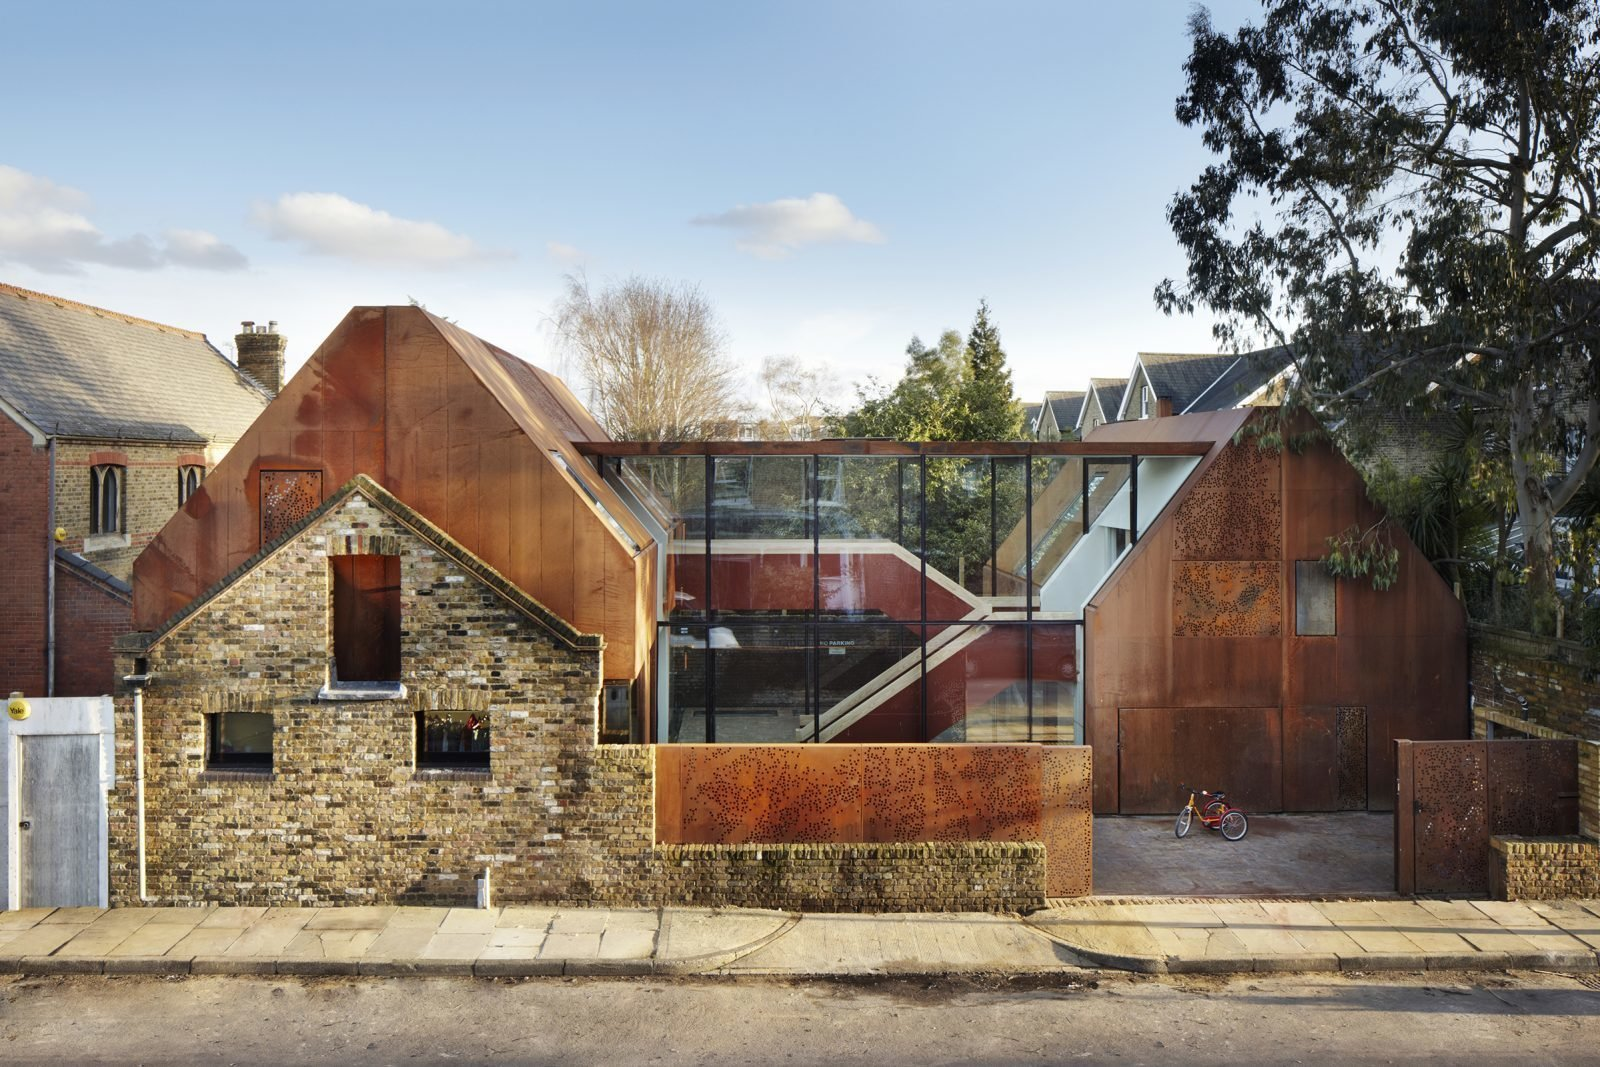 Photo 1 of 11 in Weathered Steel Clads a $4.7M Home Near London's Kew Gardens